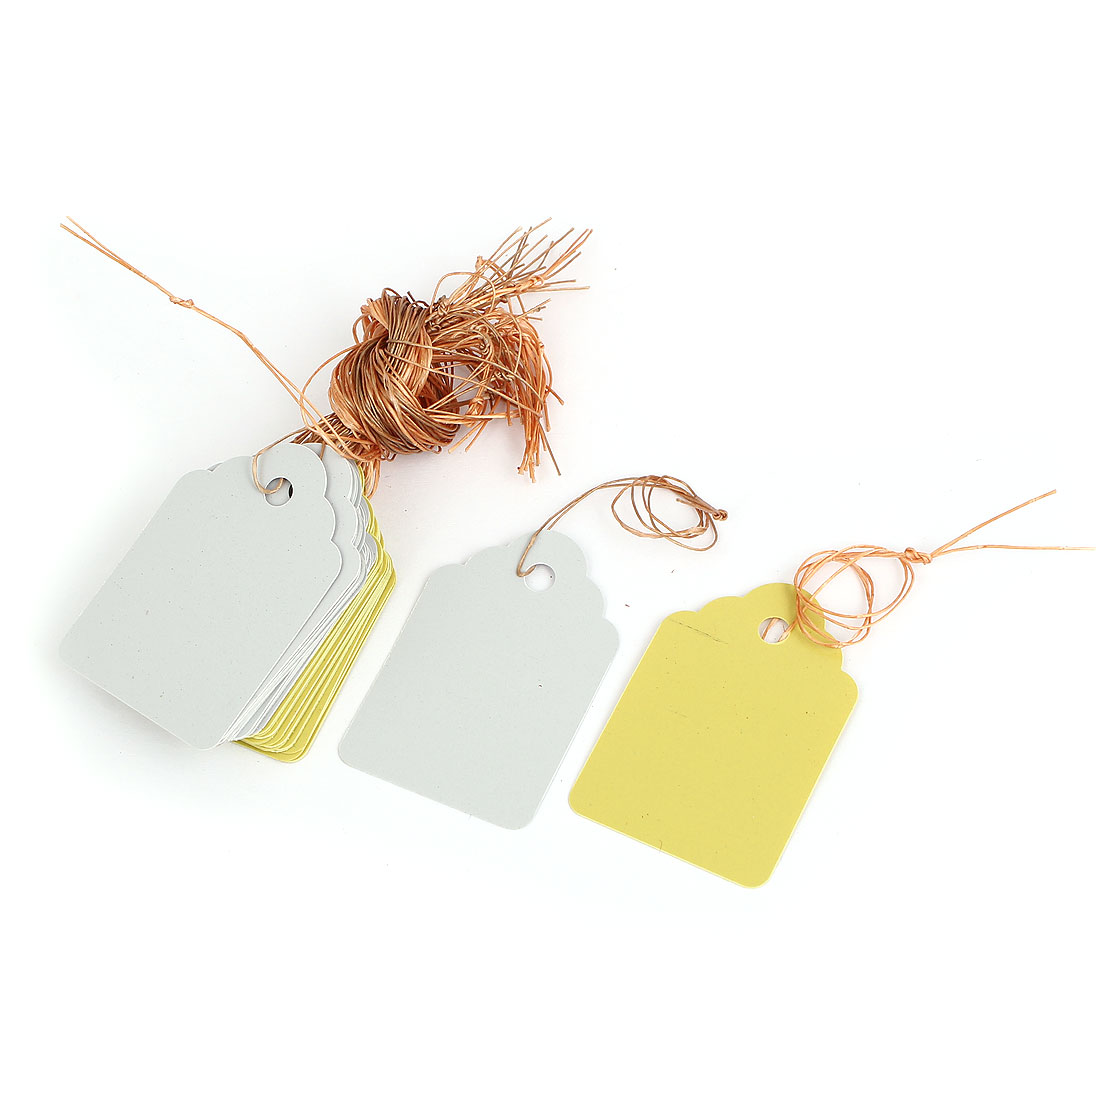 45mm x 30mm Plastic Nursery Garden Plant Seed Hanging Tag Label Marker Yellow White 36Pcs